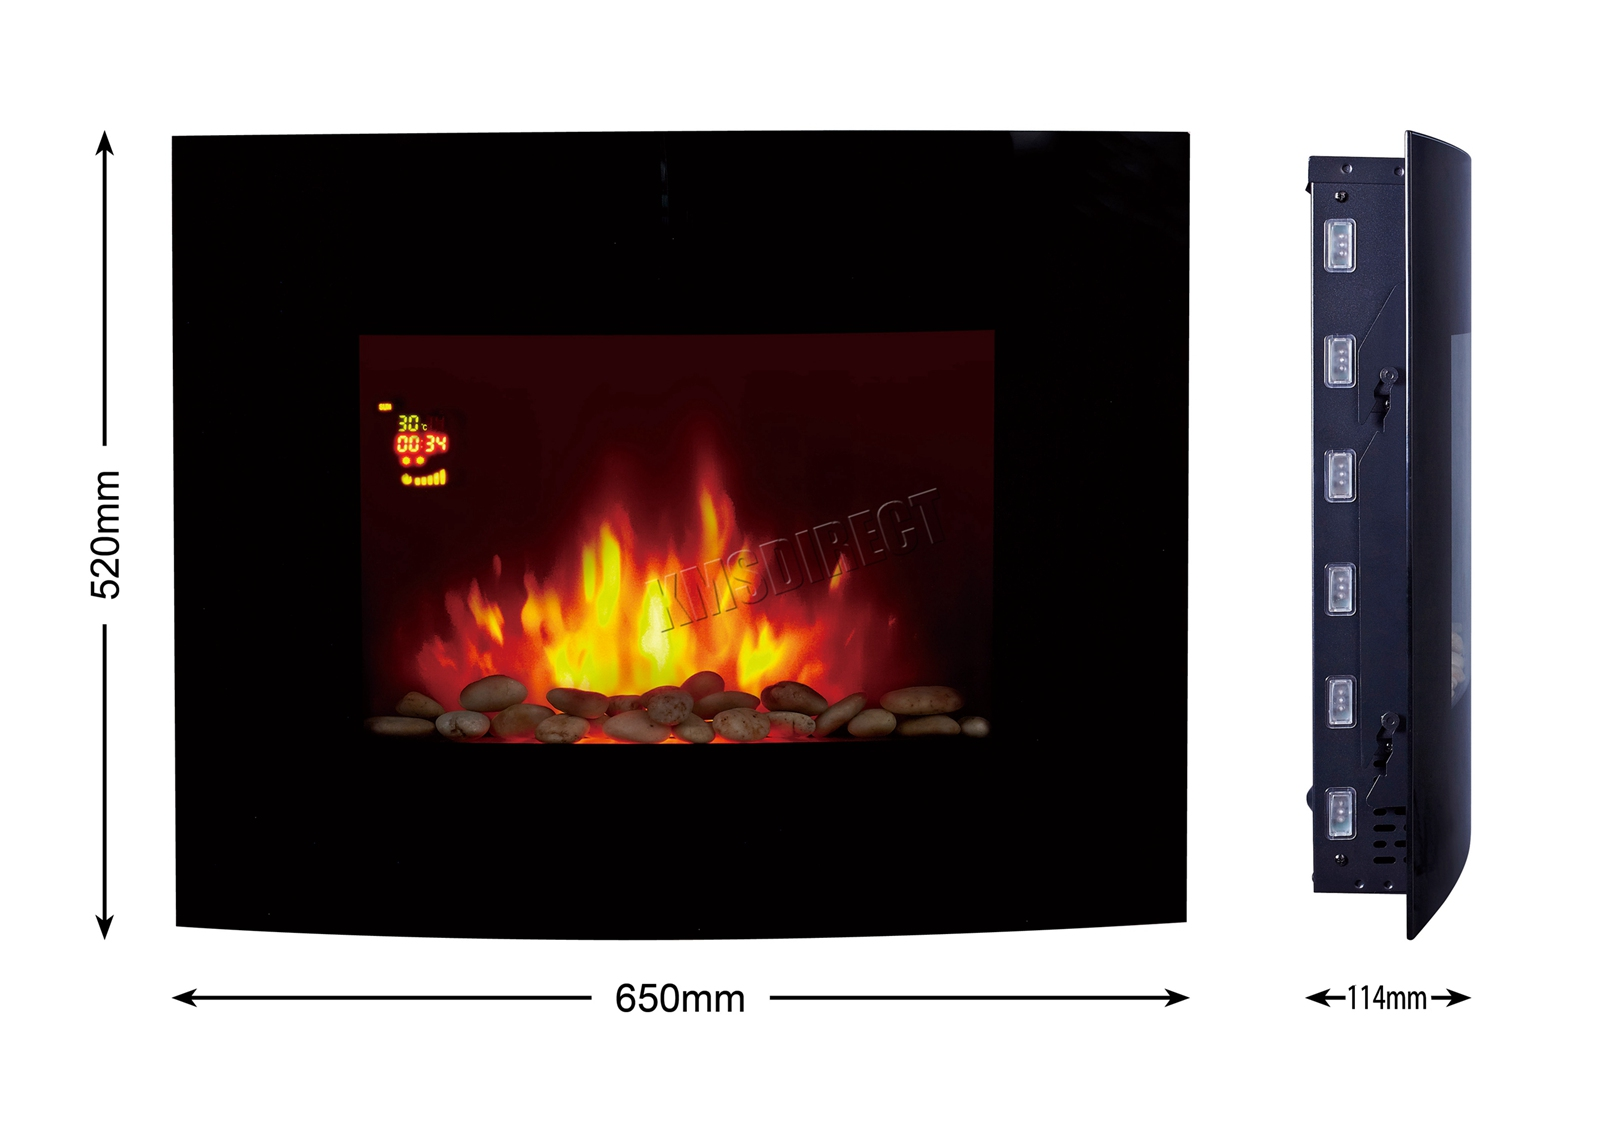 Electric Fireplace Remote Control Replacement Awesome Details About Wall Mounted Electric Fireplace Glass Heater Fire Remote Control Led Backlit New